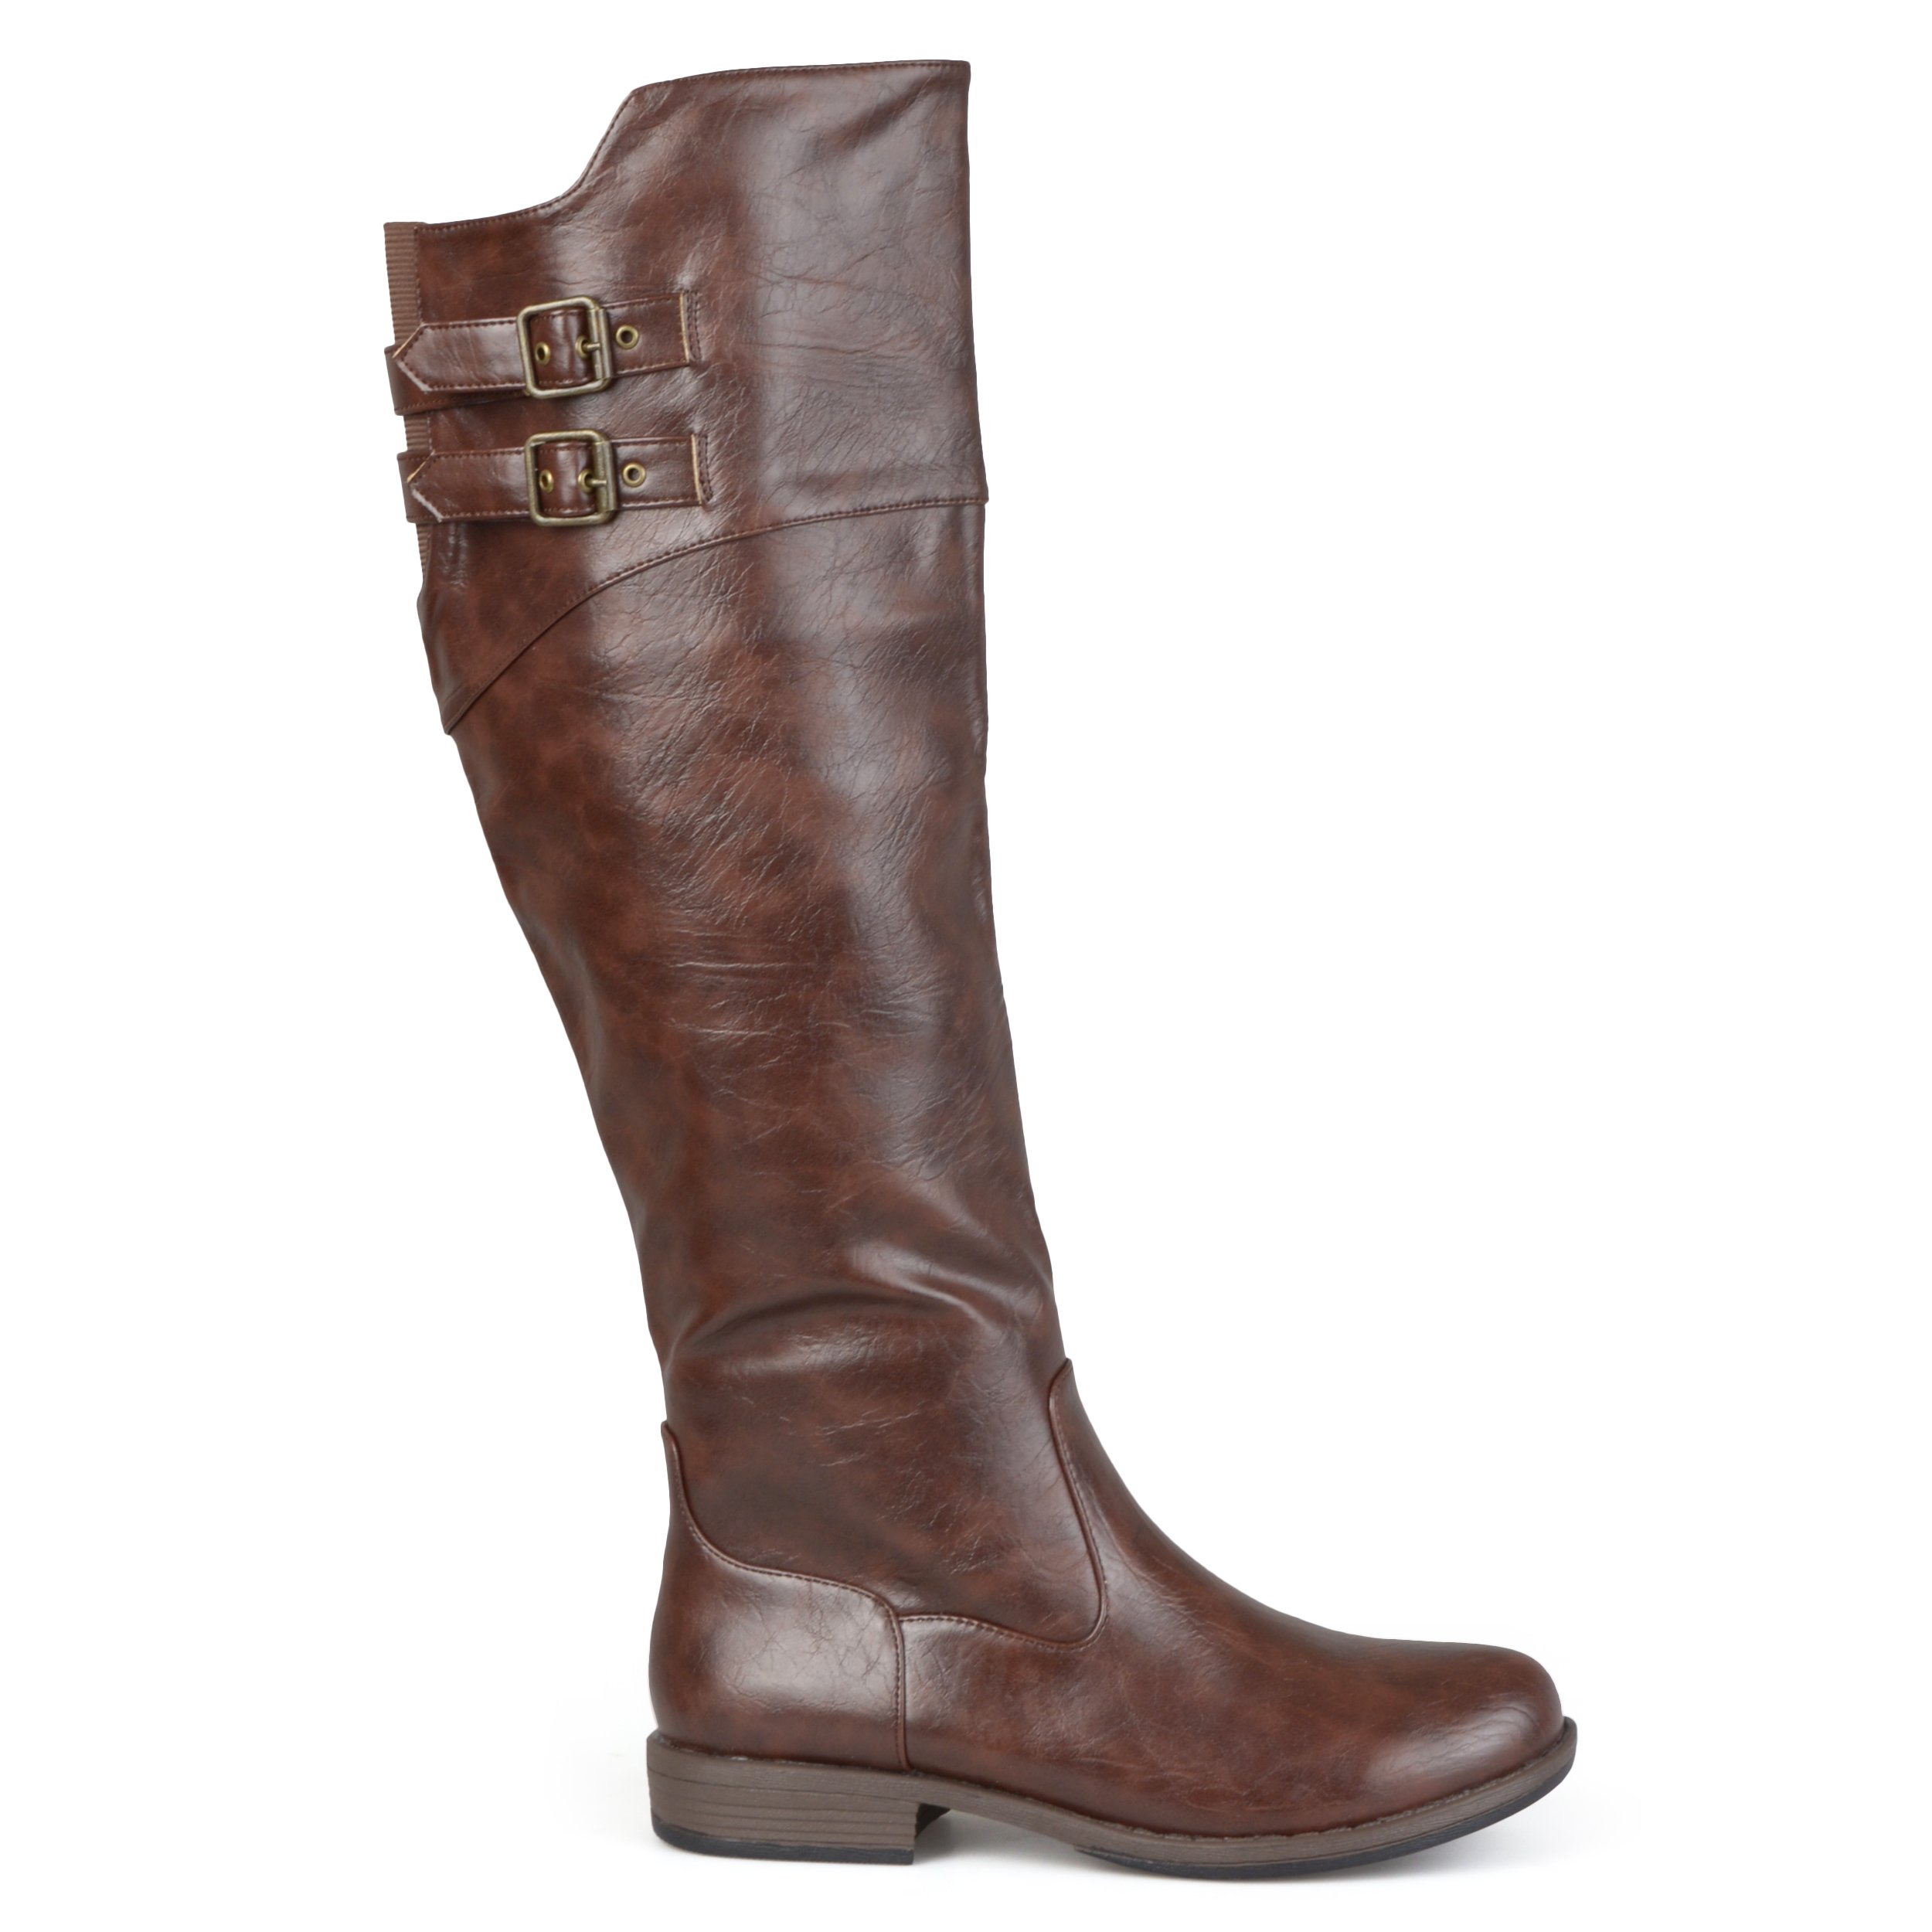 Brinley Co Women's Vega Knee High Boot,Brown,10 Extra Wide/Wide Shaft US